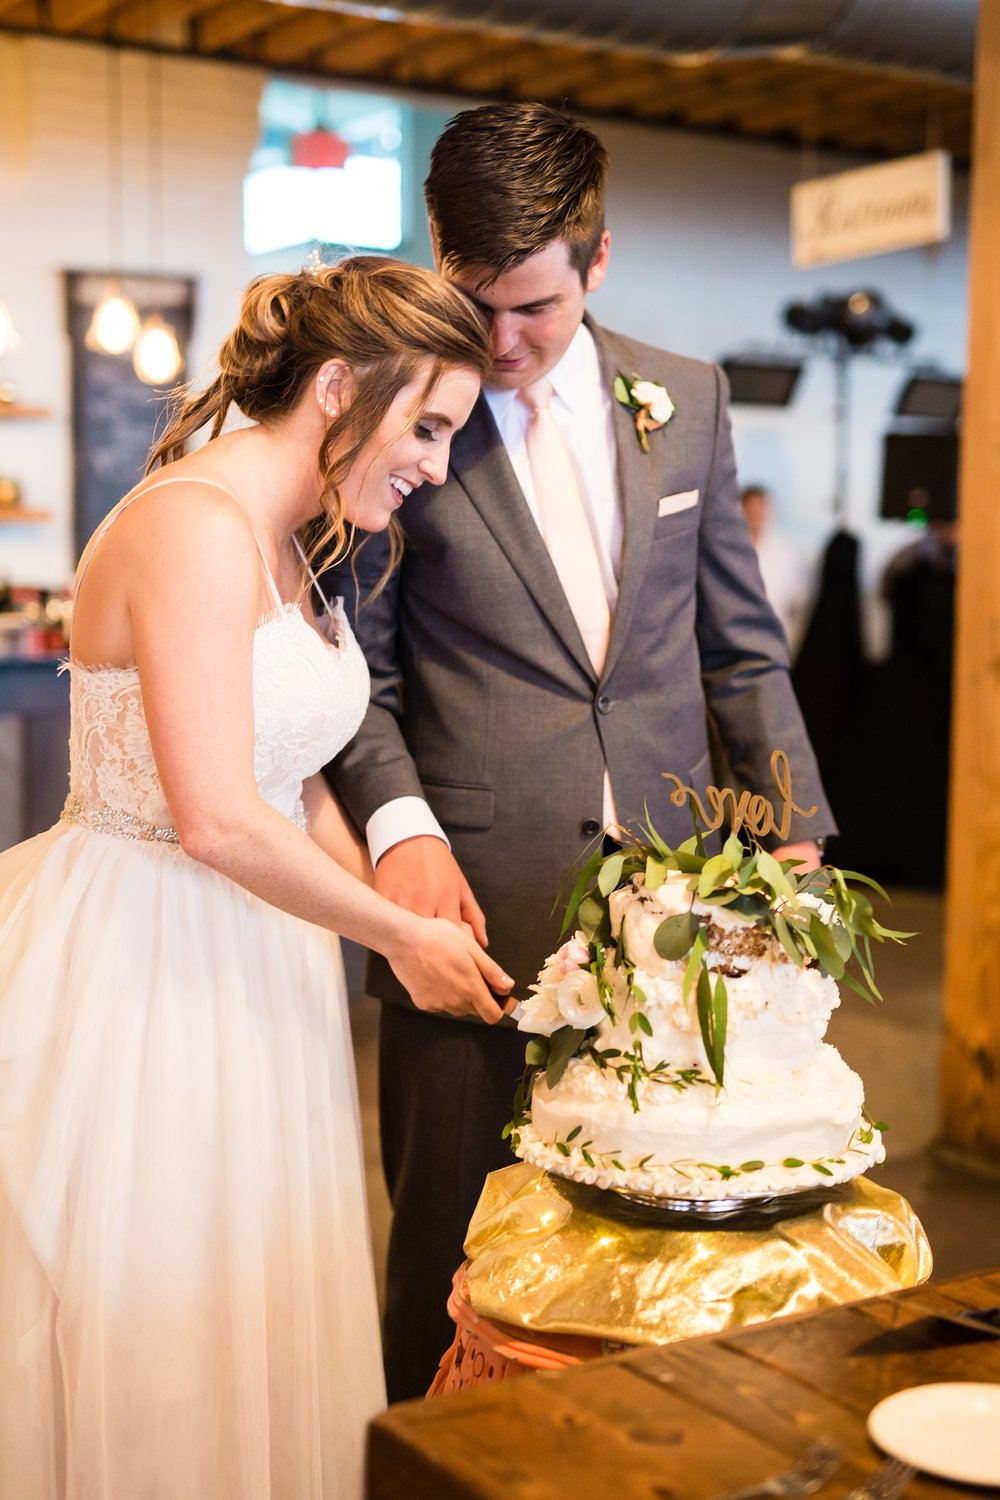 Meghan_Drew_Grand_Rapids_Cheney_place_Wedding079.JPG